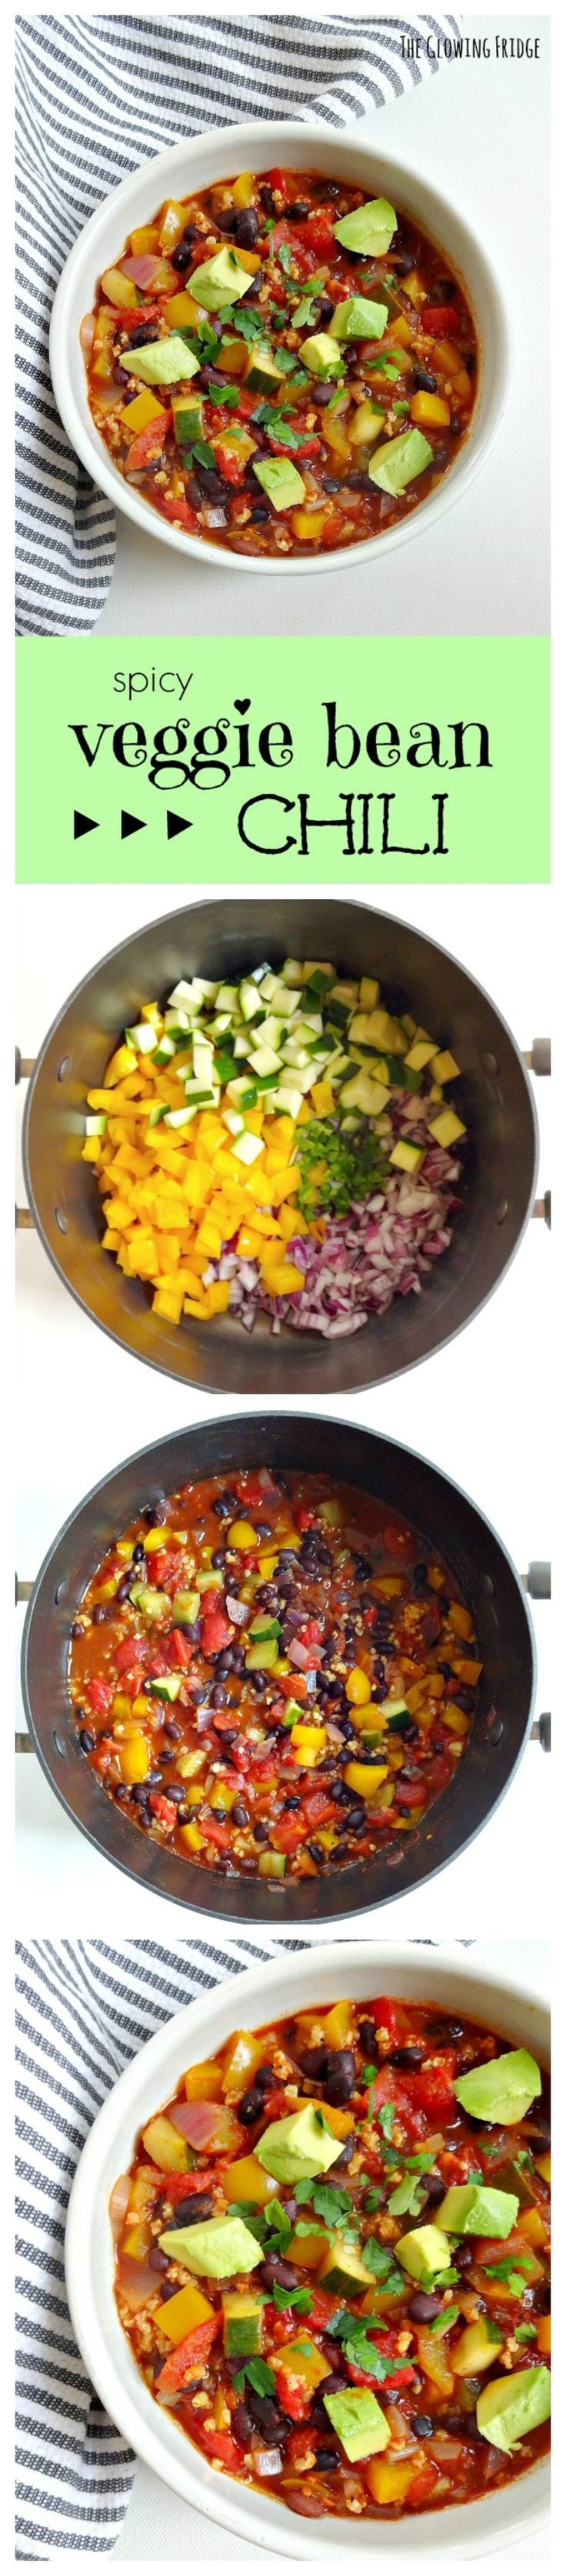 Read More : vegetarianlasagna.blogspot.com